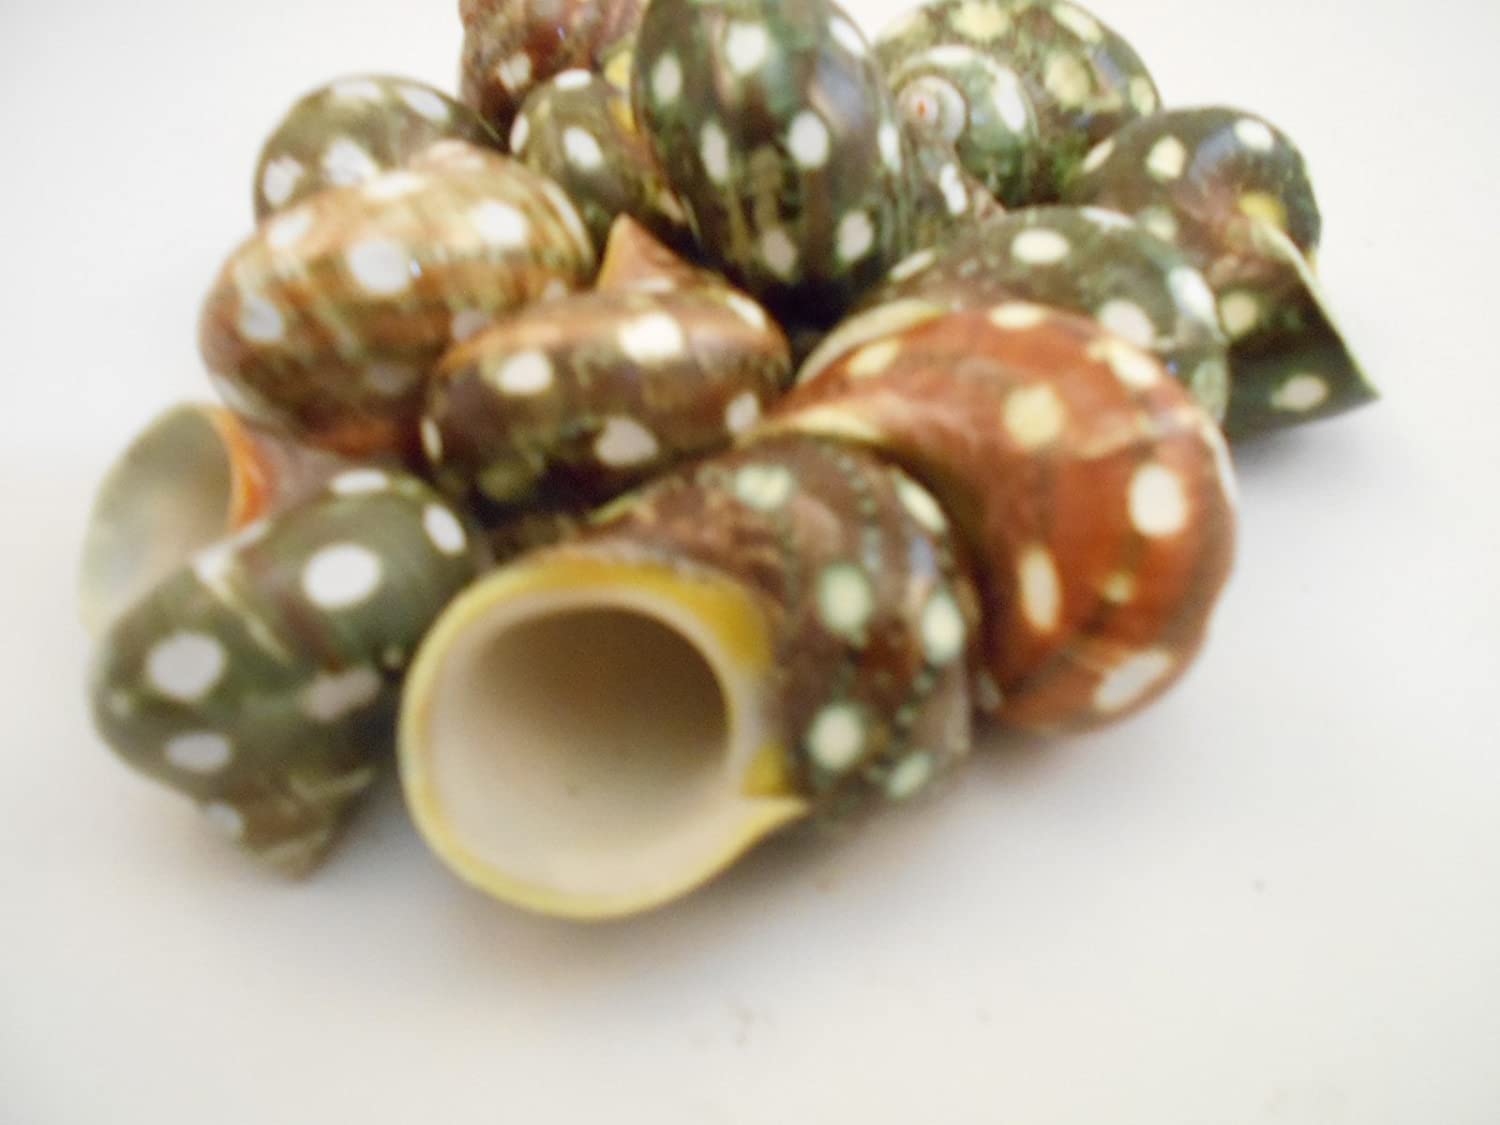 Set of 12 Spotted Turbo Shells Seashell 1-2 size (3/4-1 opening) Hermit Crab Florida Shells and Gifts